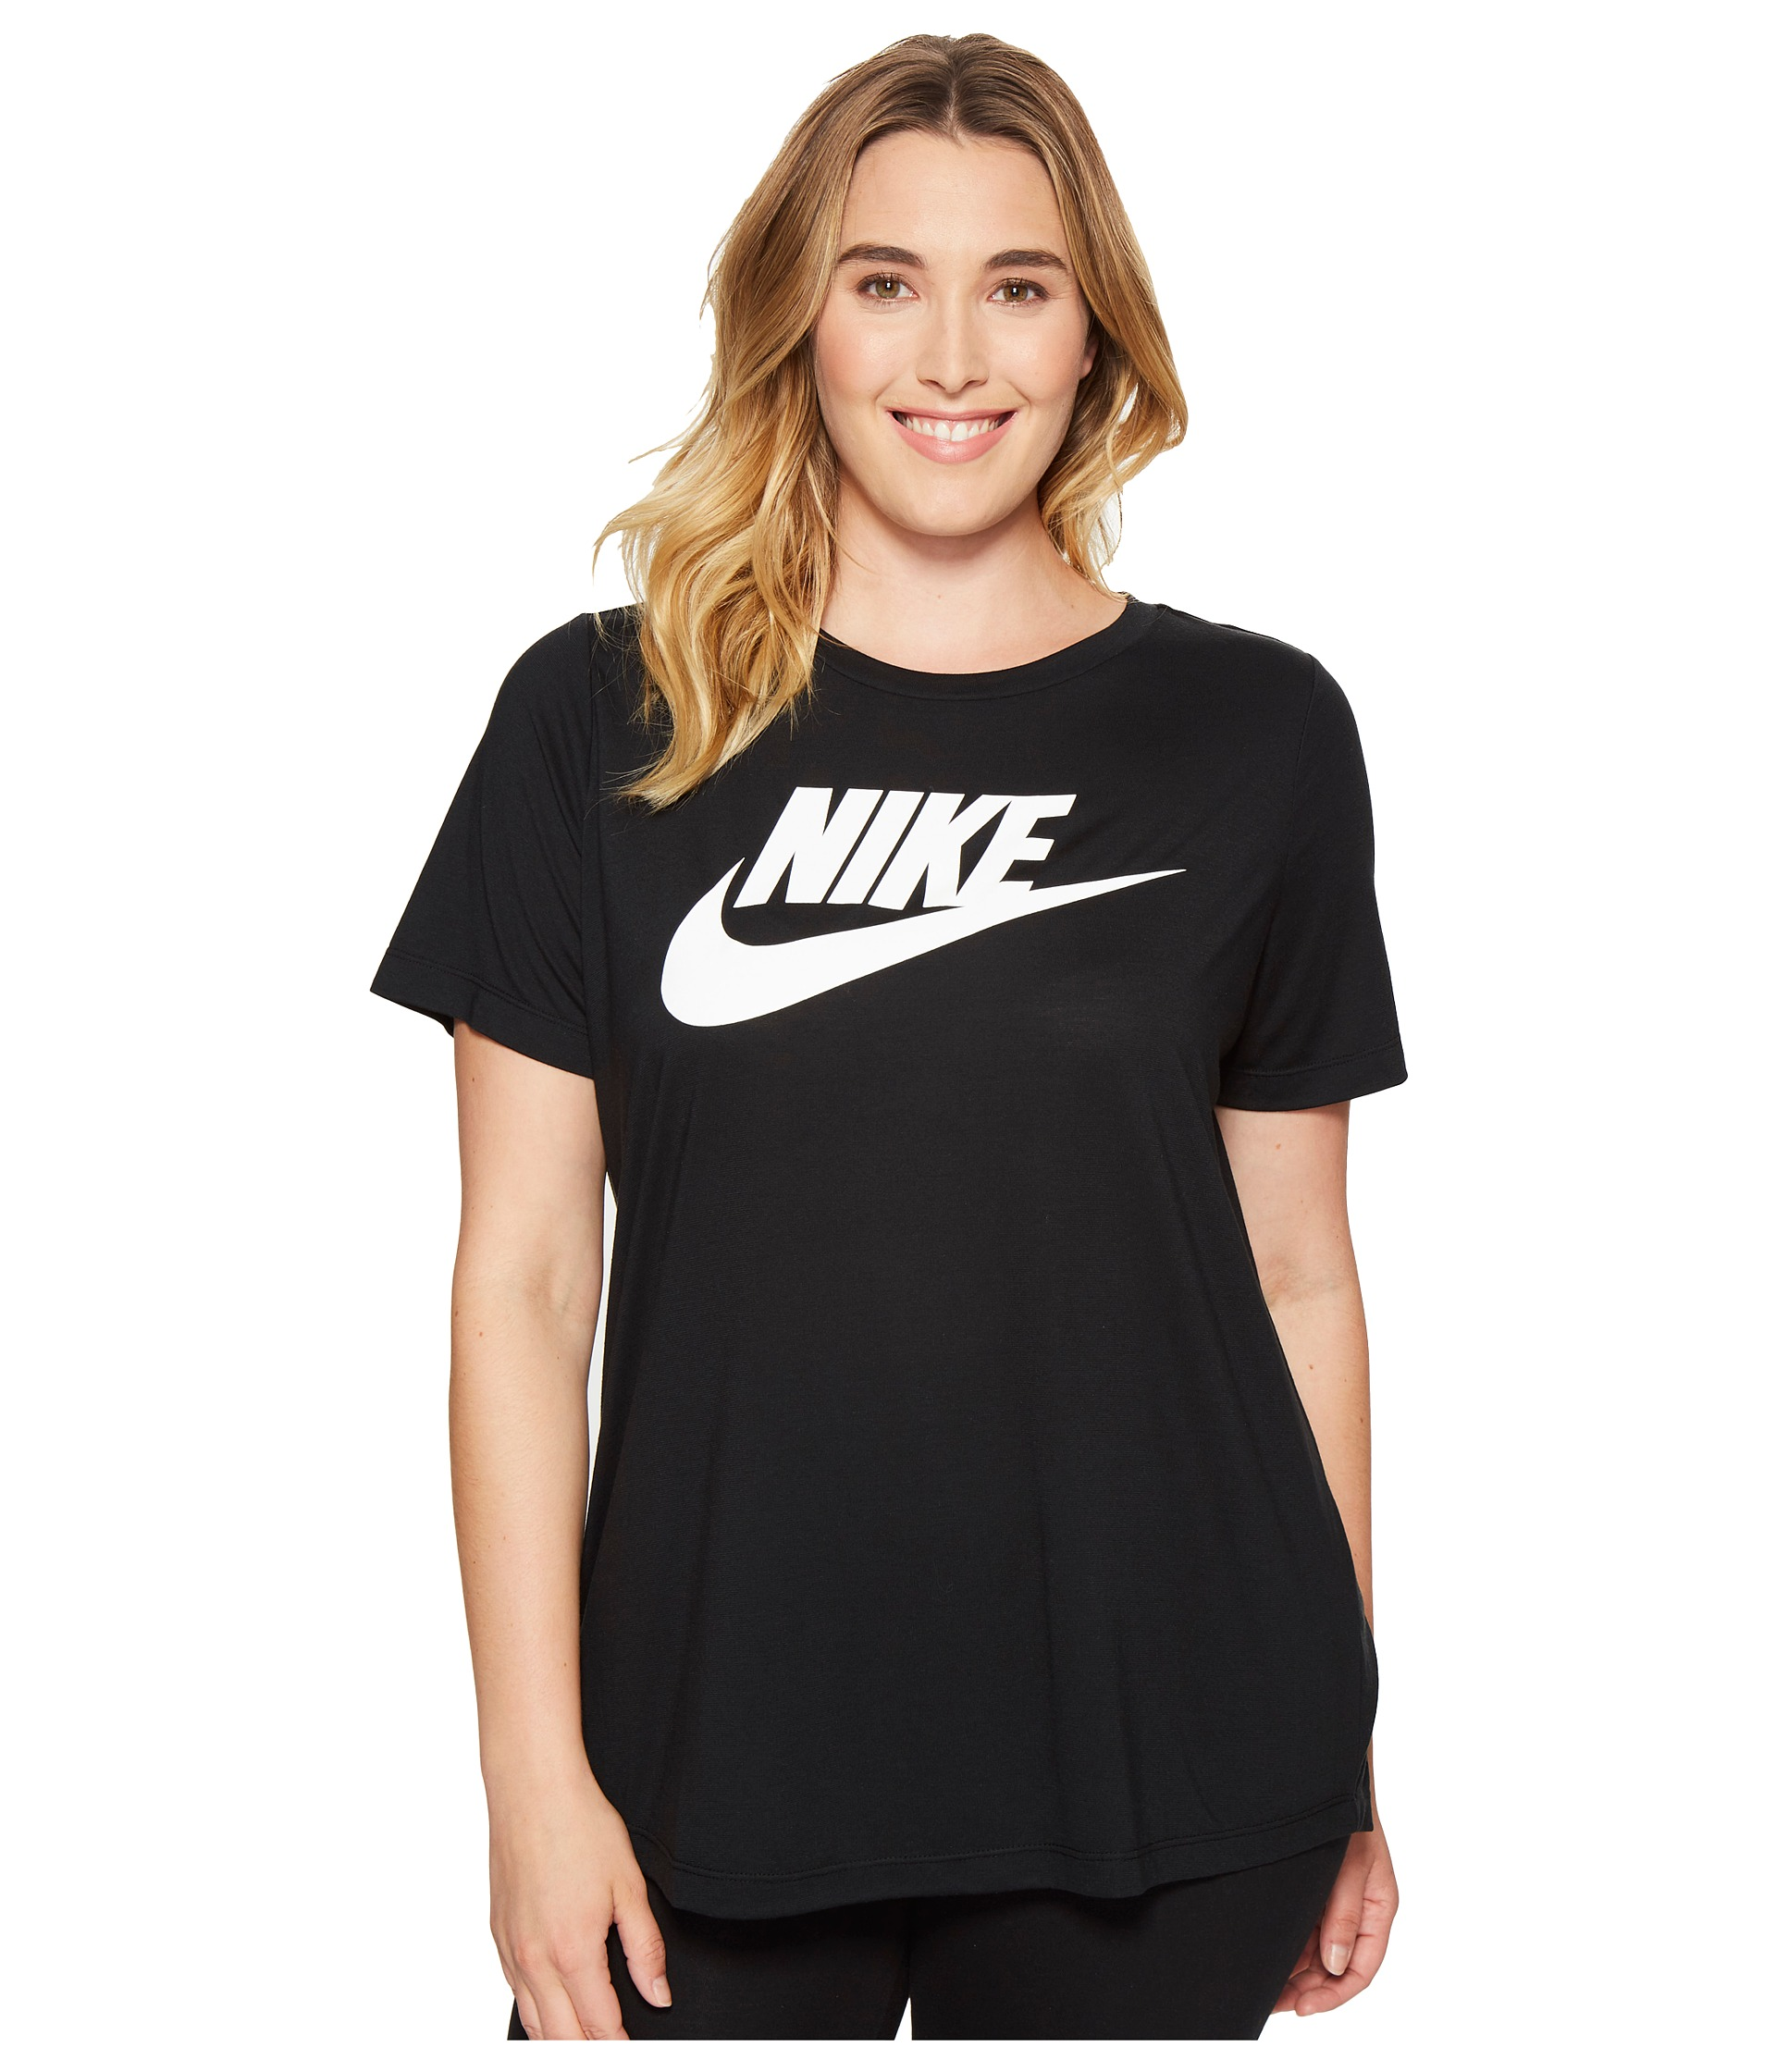 Nike sportswear essential t shirt size 1x 3x at for 3x shirts on sale